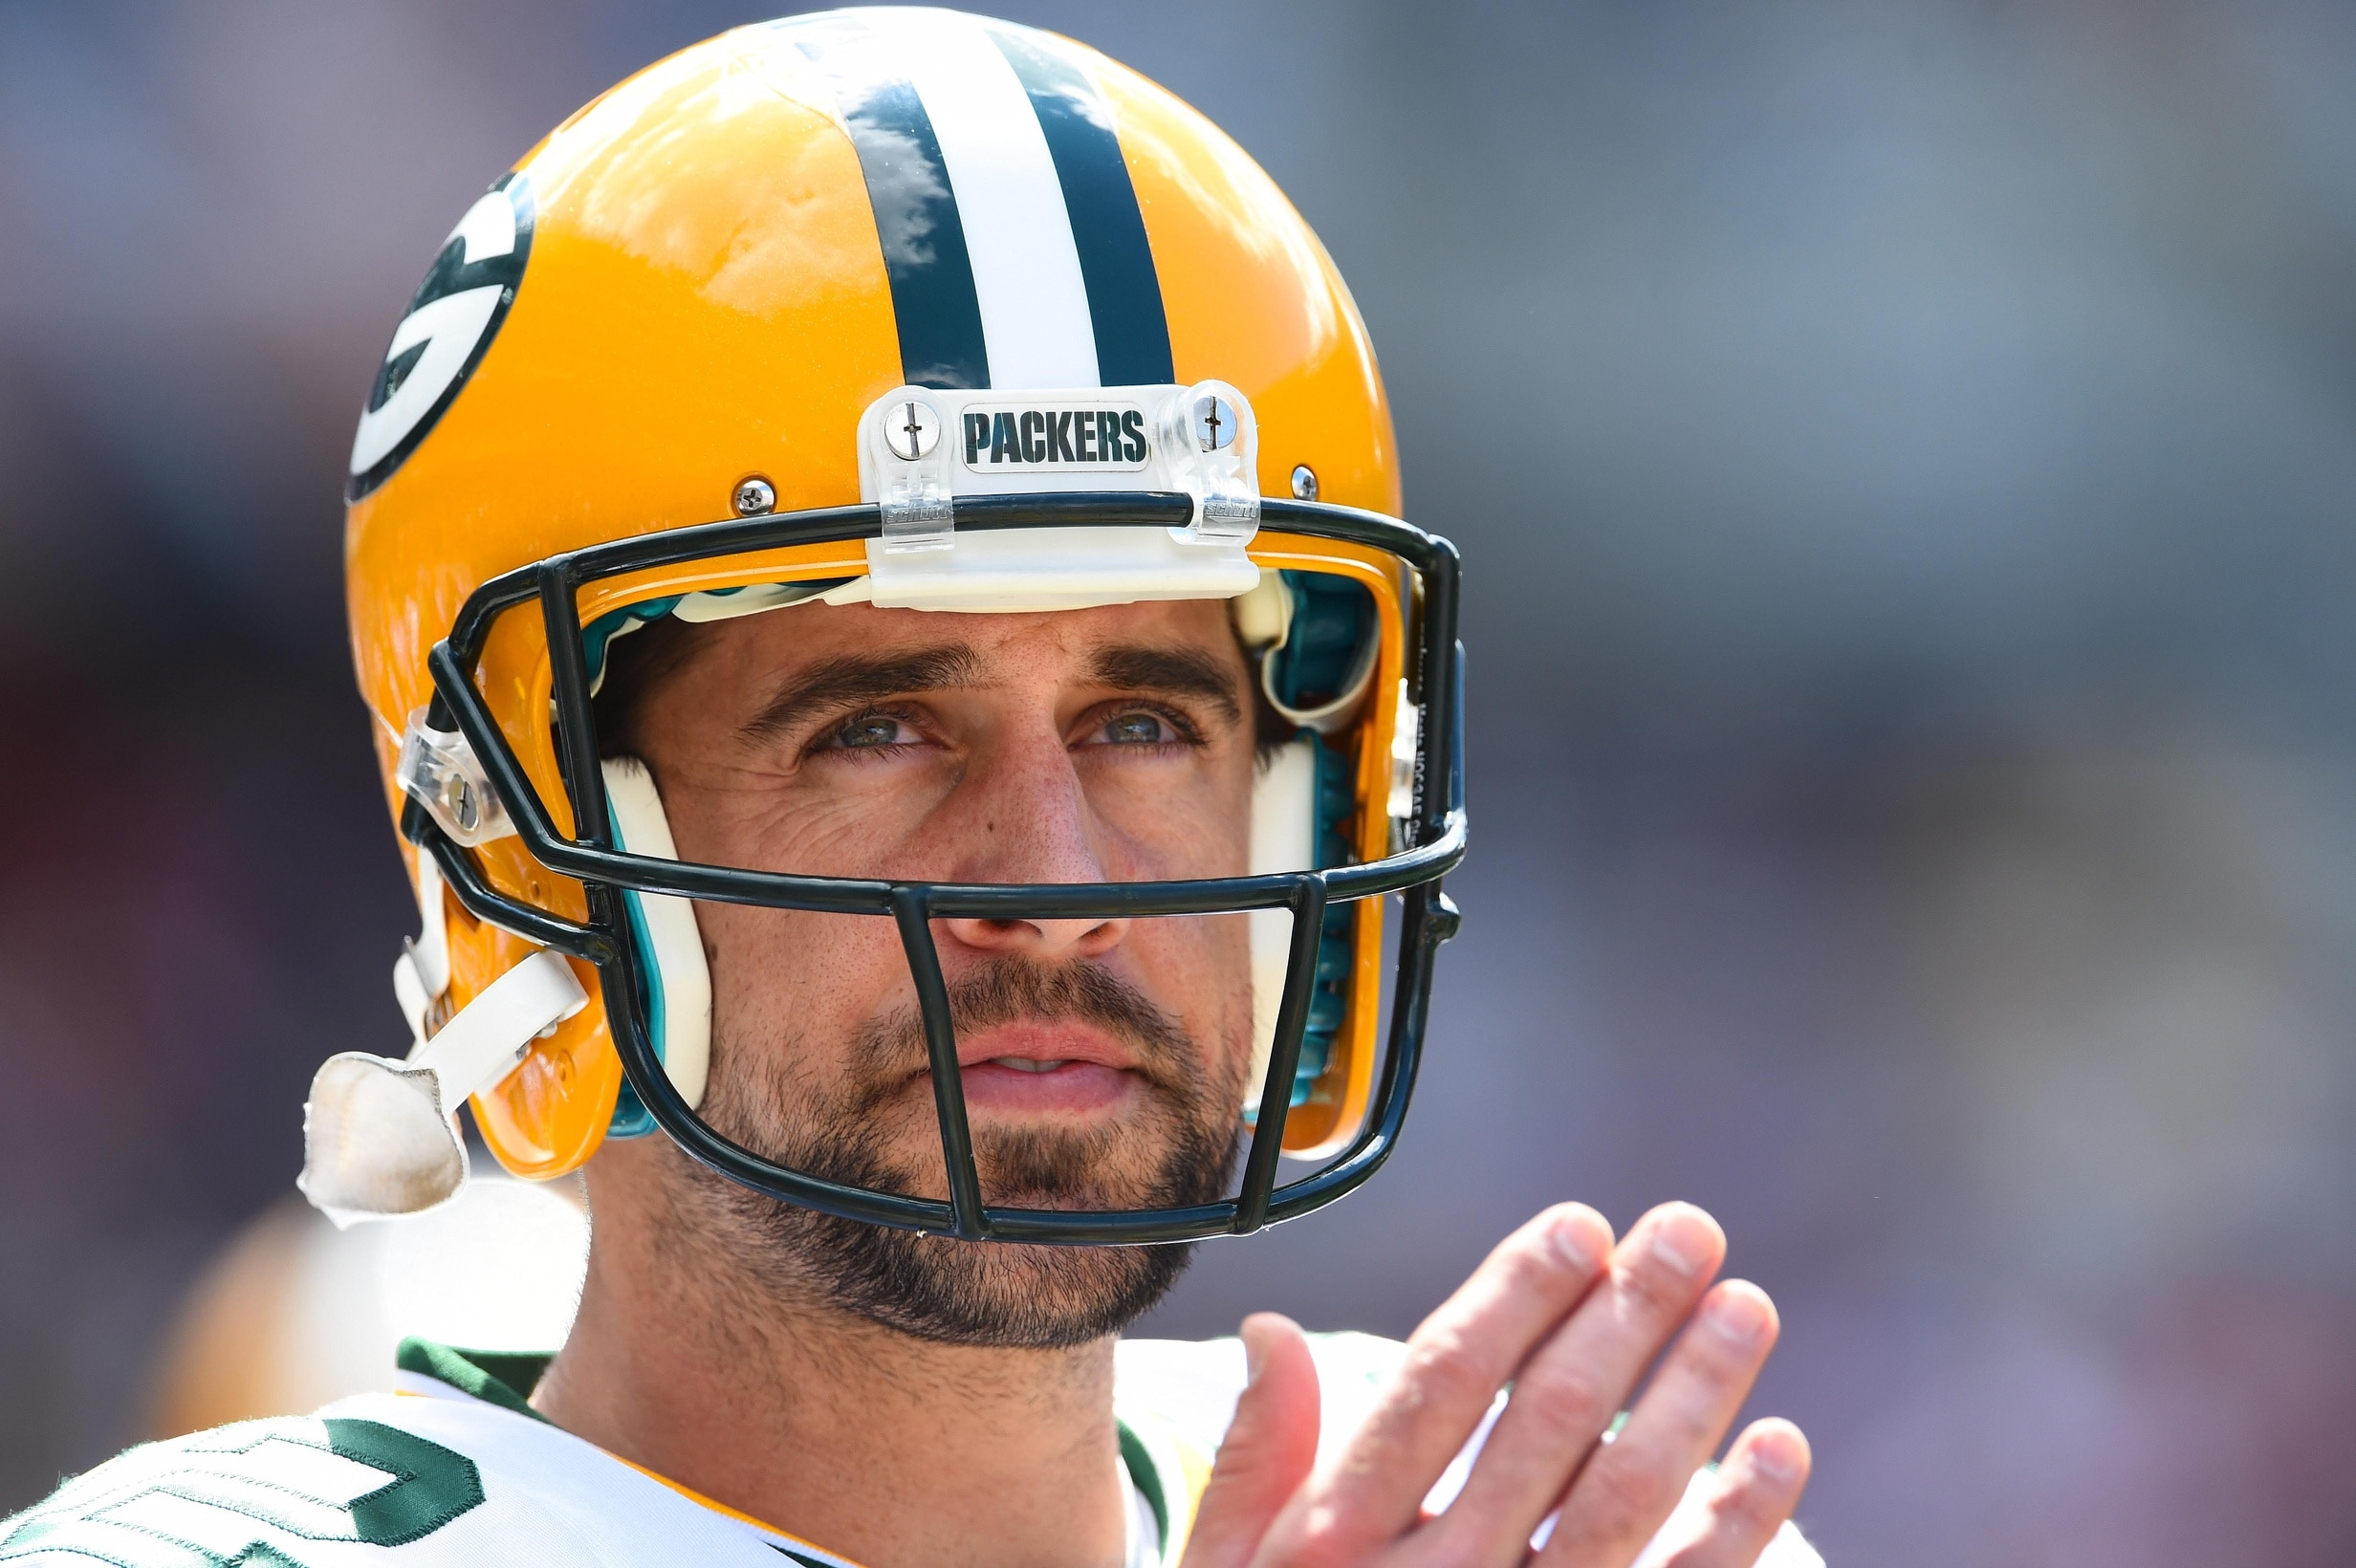 94b520a42e559 Aaron Rodgers shares an awesome video message to HS students ...